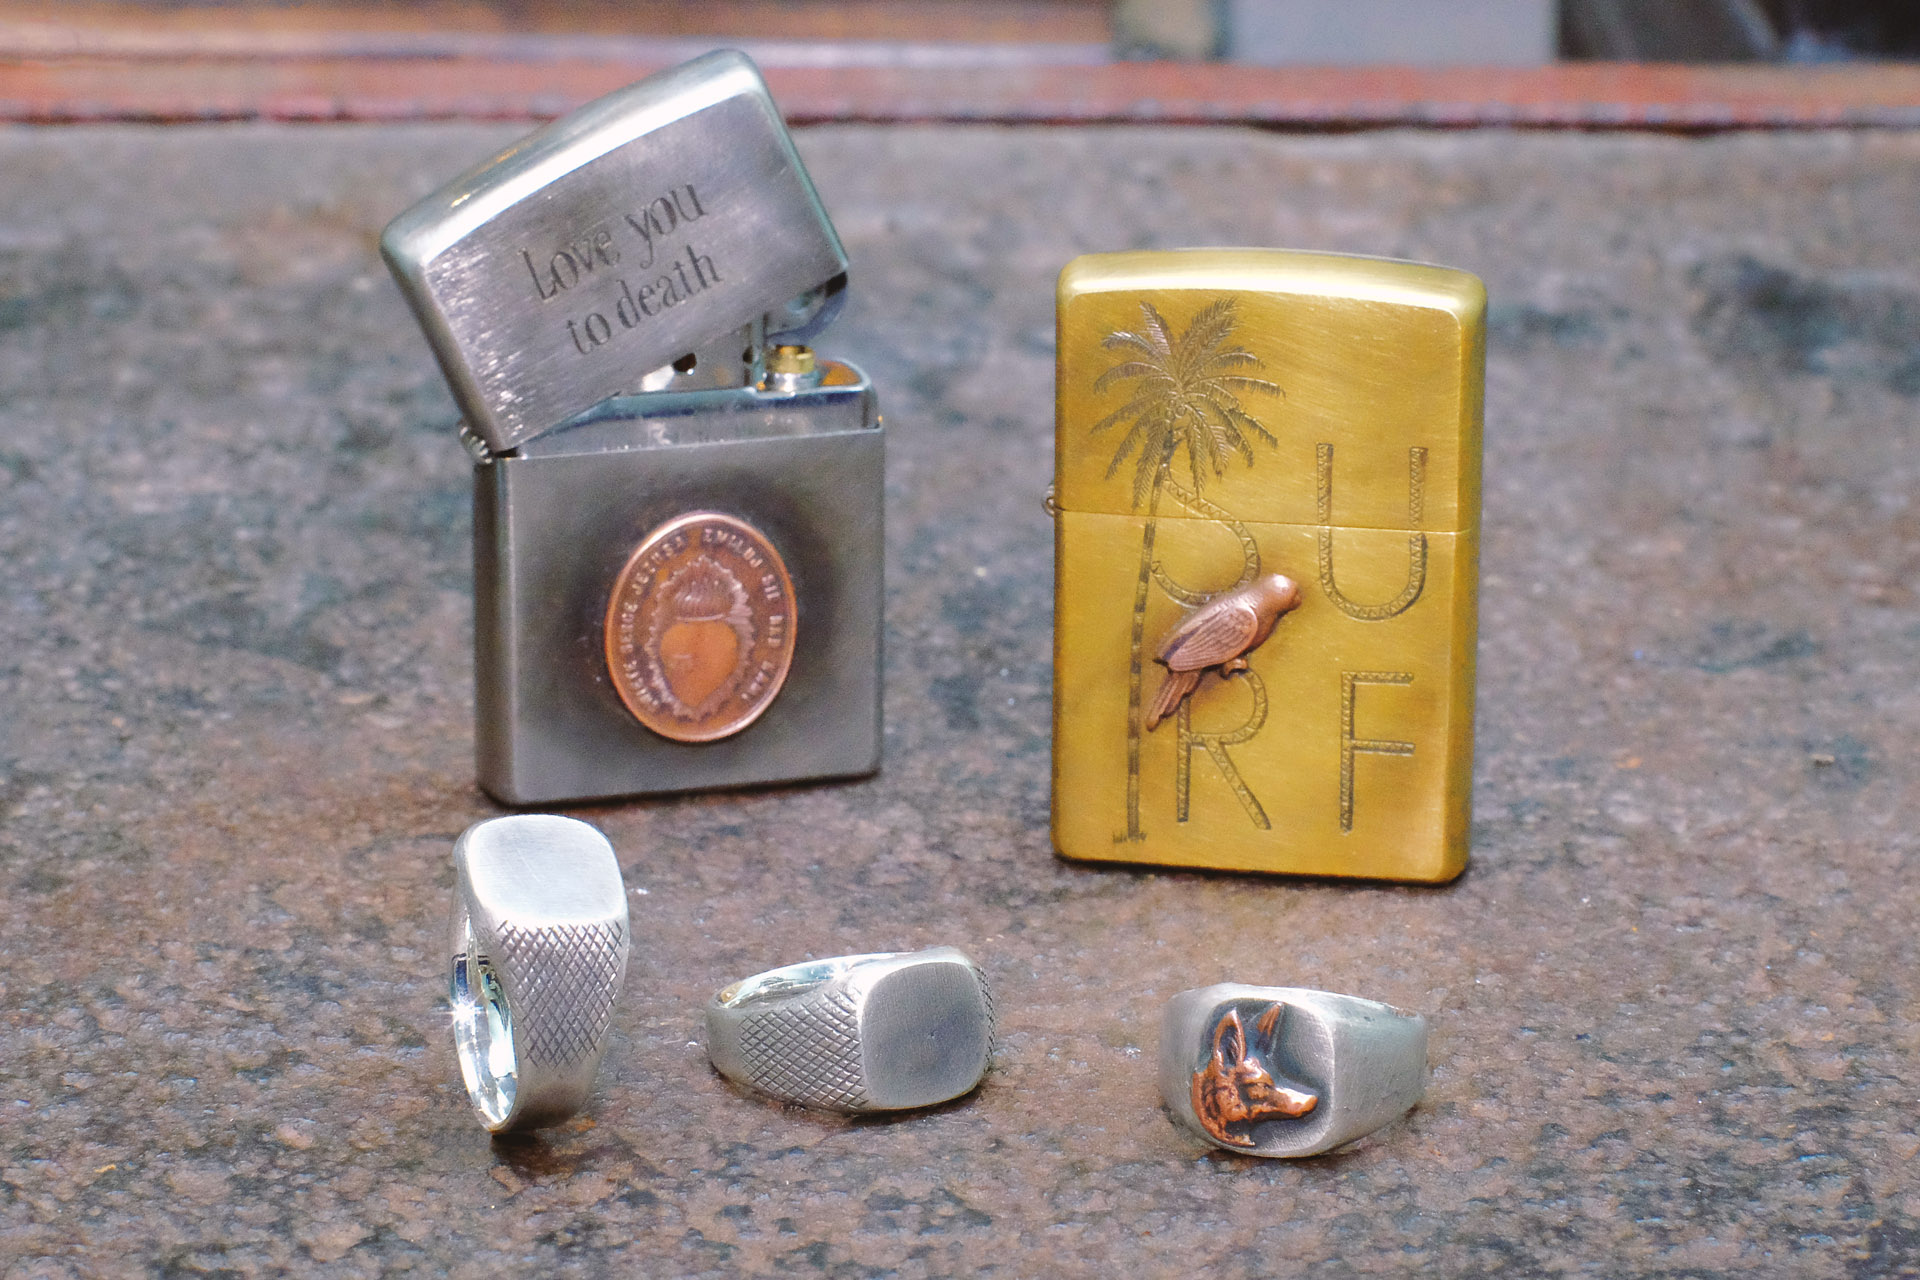 workshop811-ringe-silber-zippo-messing-uwevanafferden